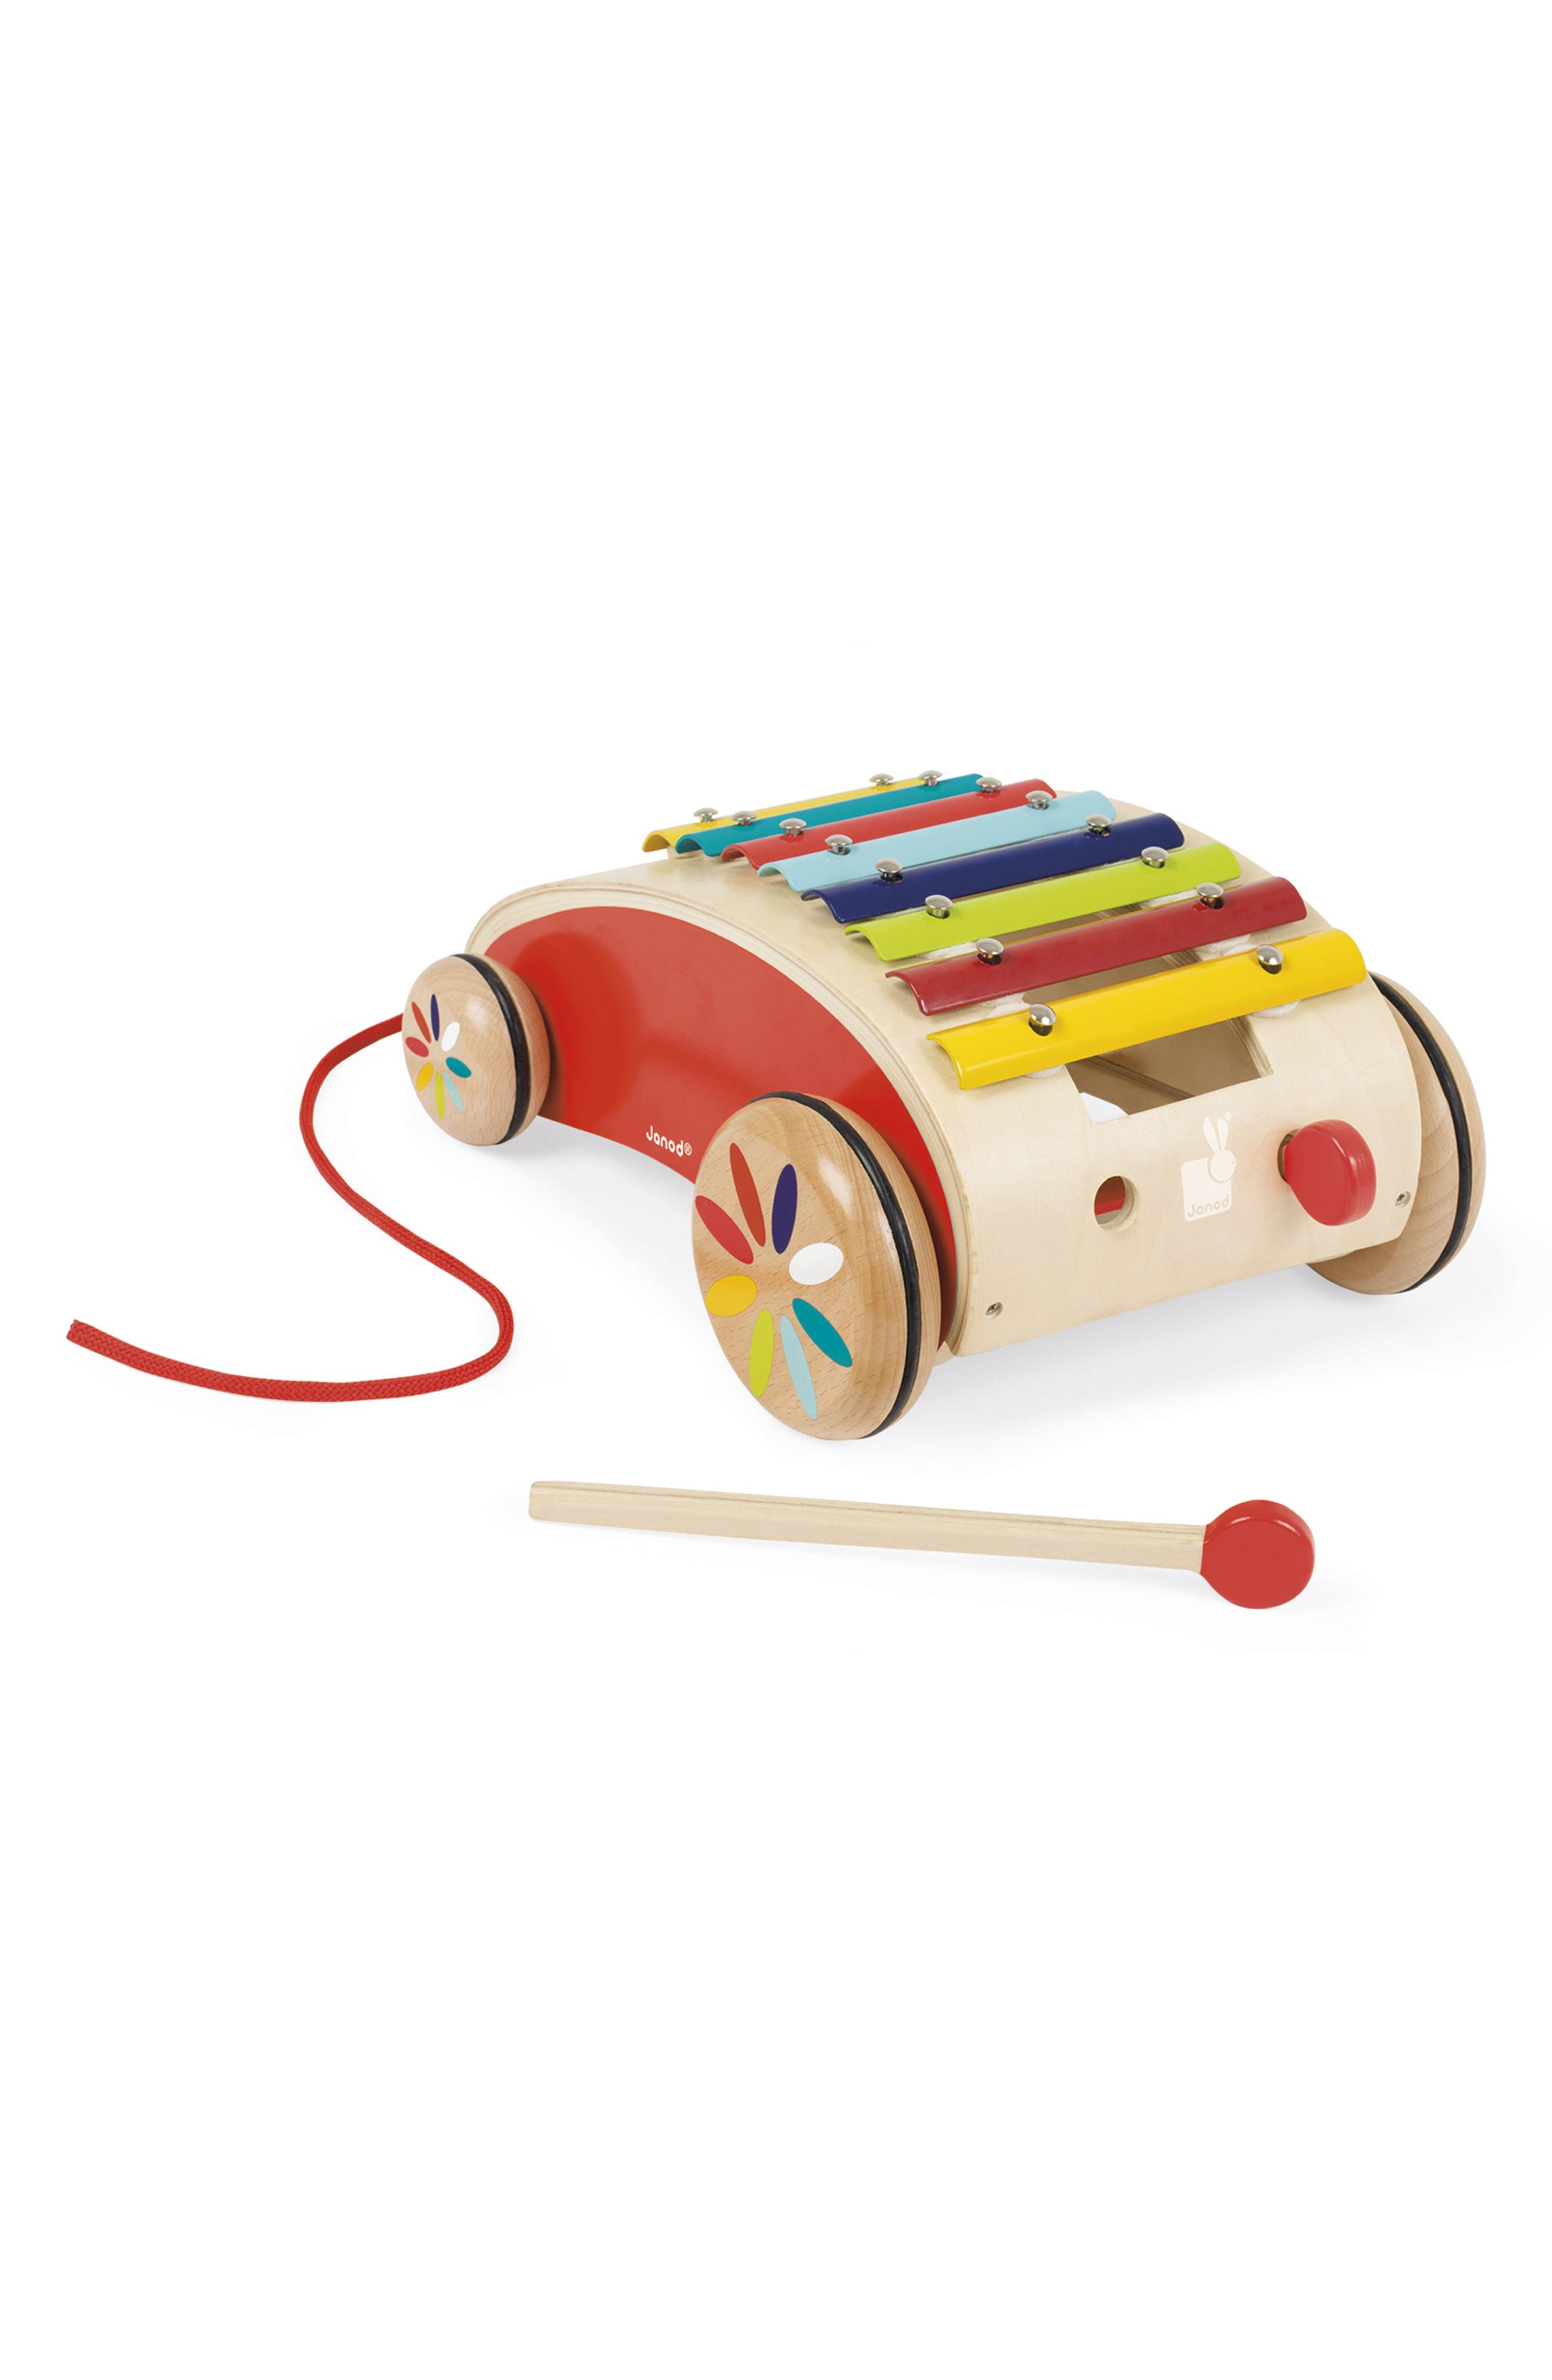 Xylophone Roller Toy,                             Main thumbnail 1, color,                             600